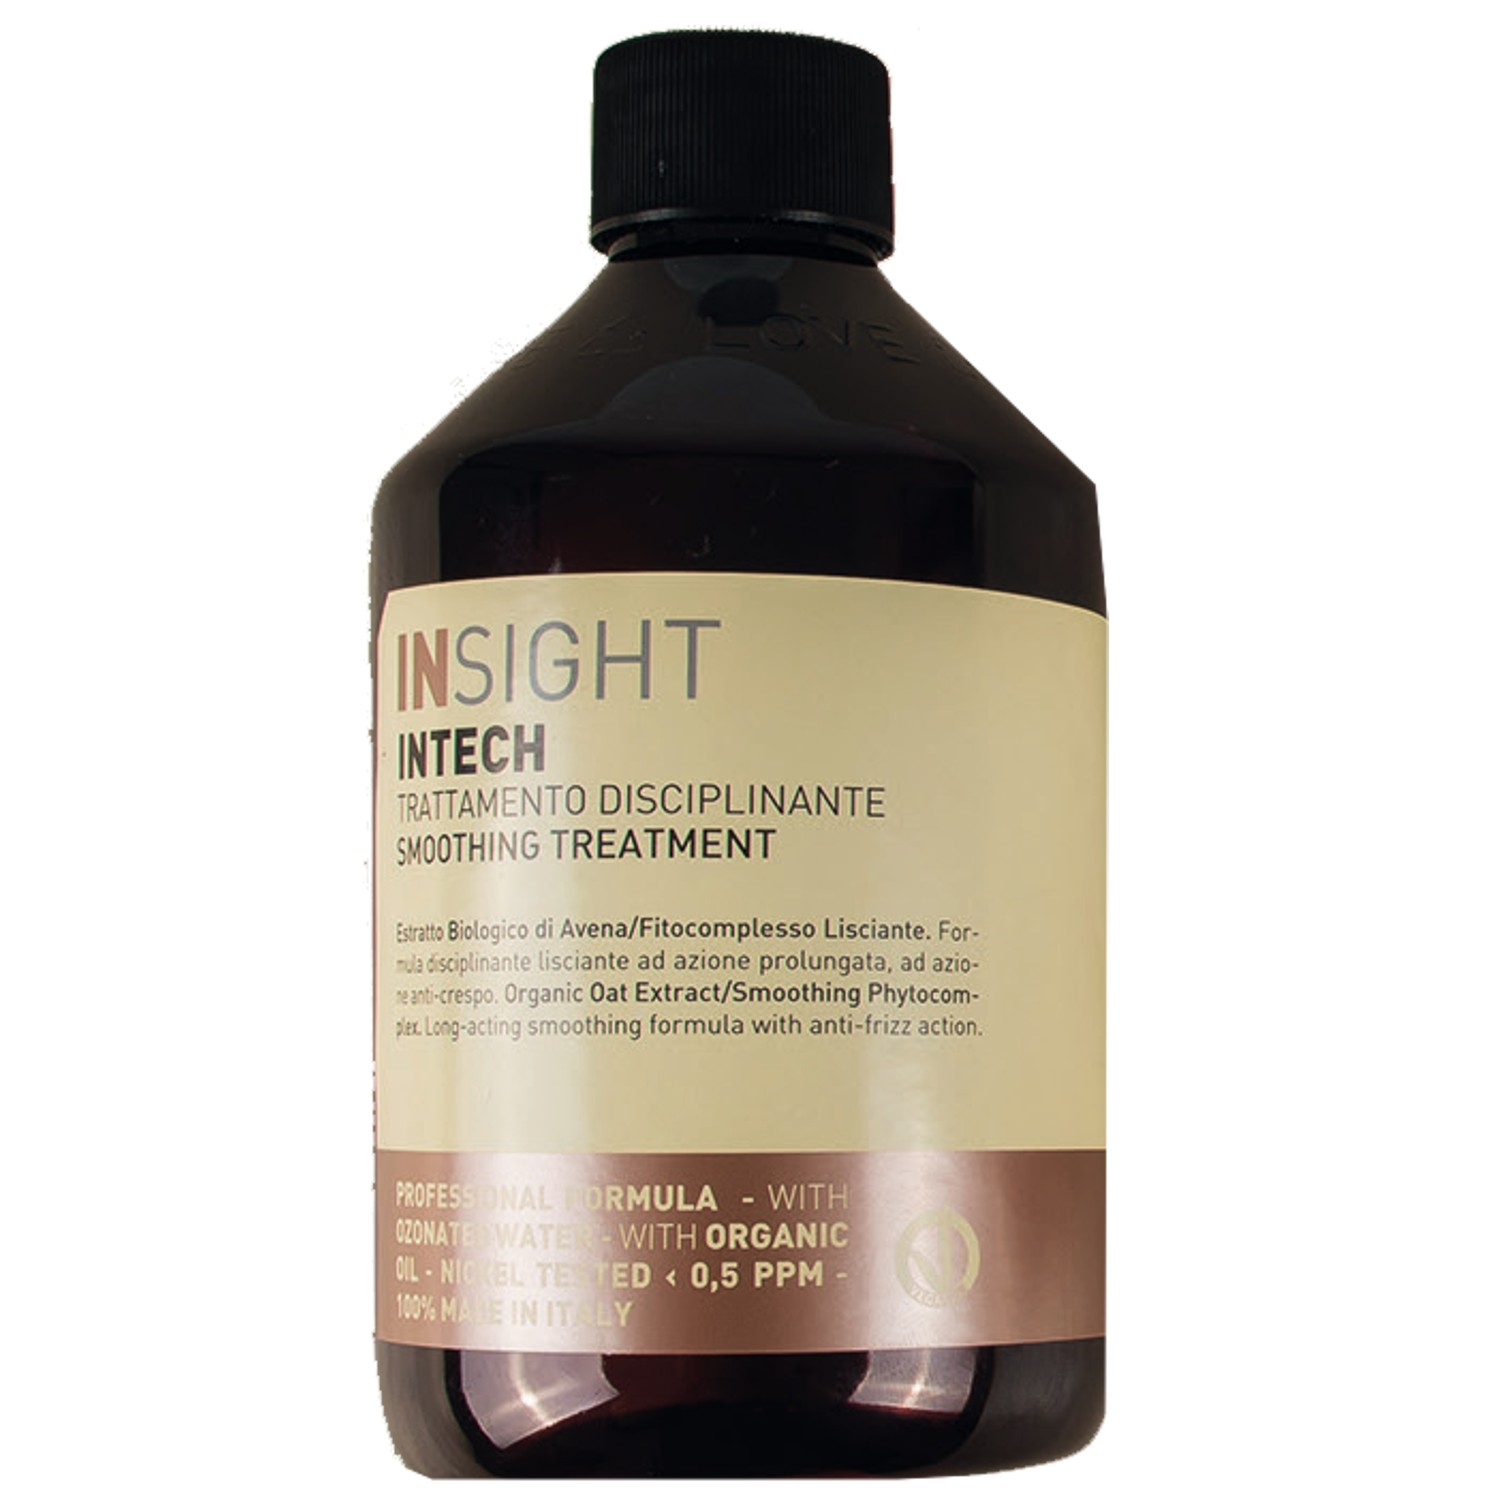 Insight INTECH Smoothing Treatment 400 ml